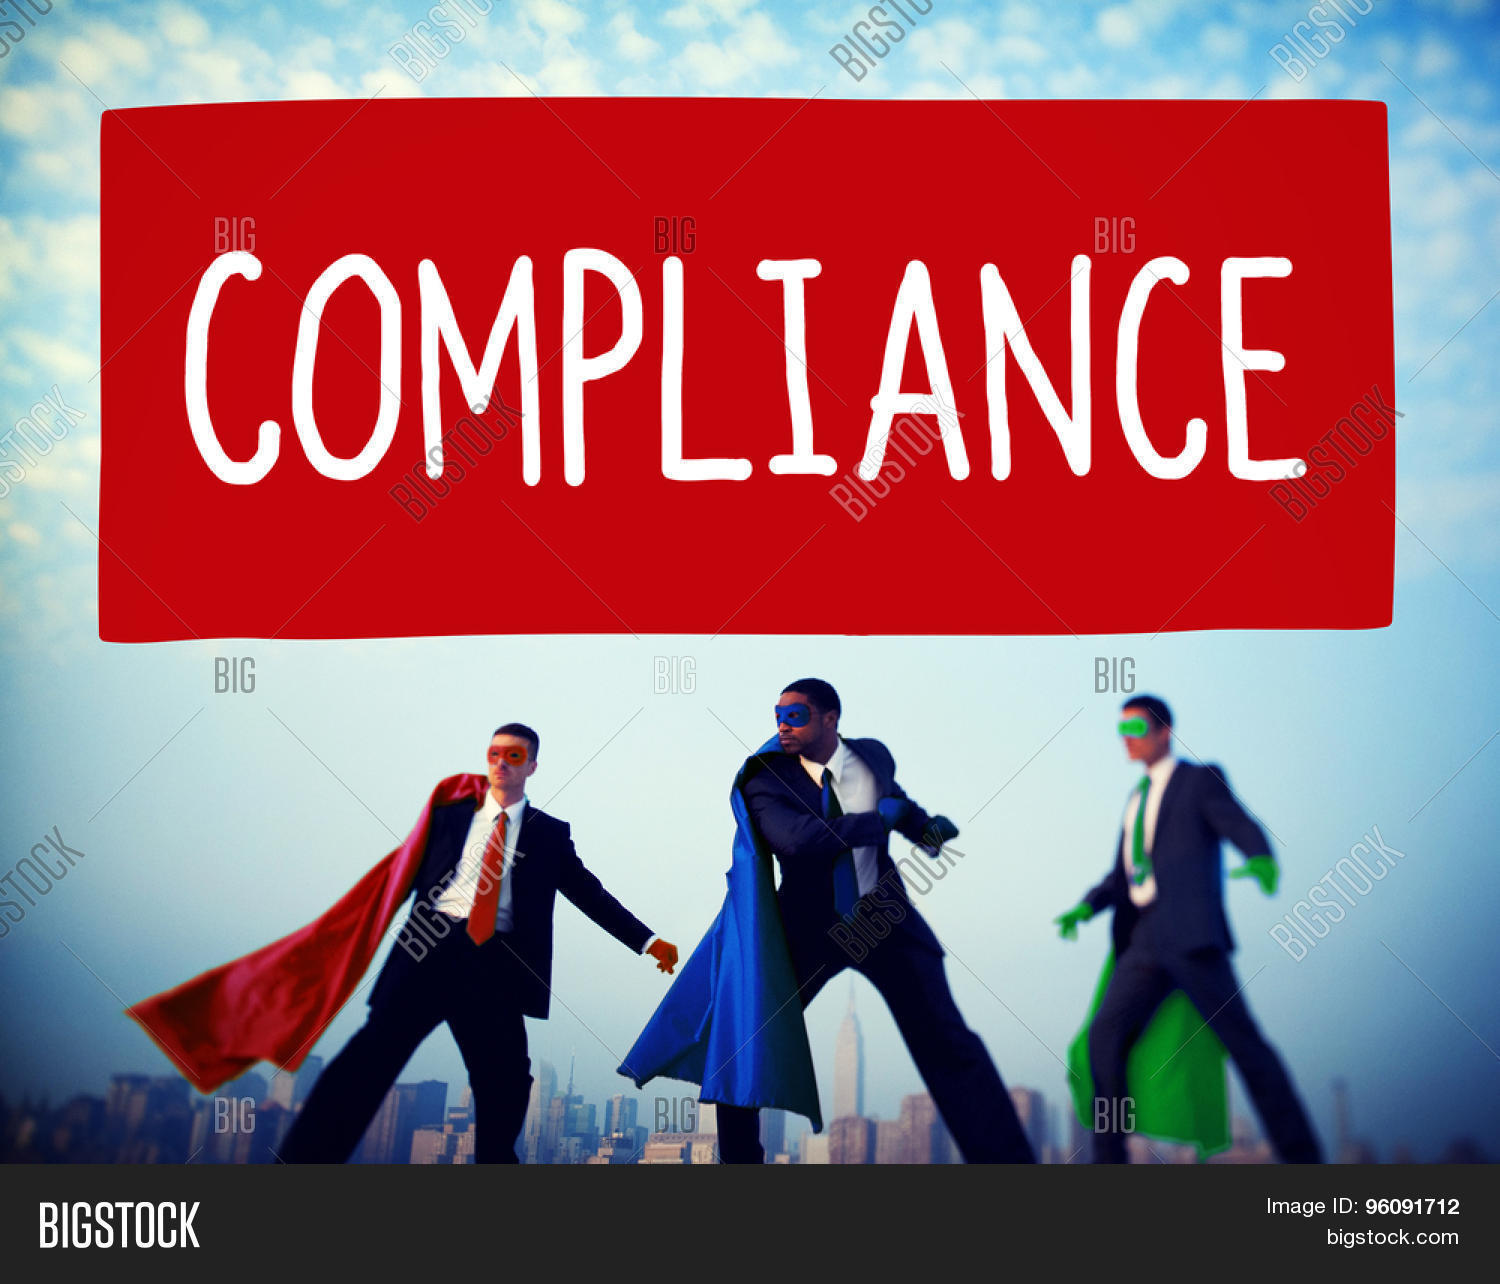 Compliance Rules Regulations Policies Codes Concept Stock Photo & Stock Images | Bigstock